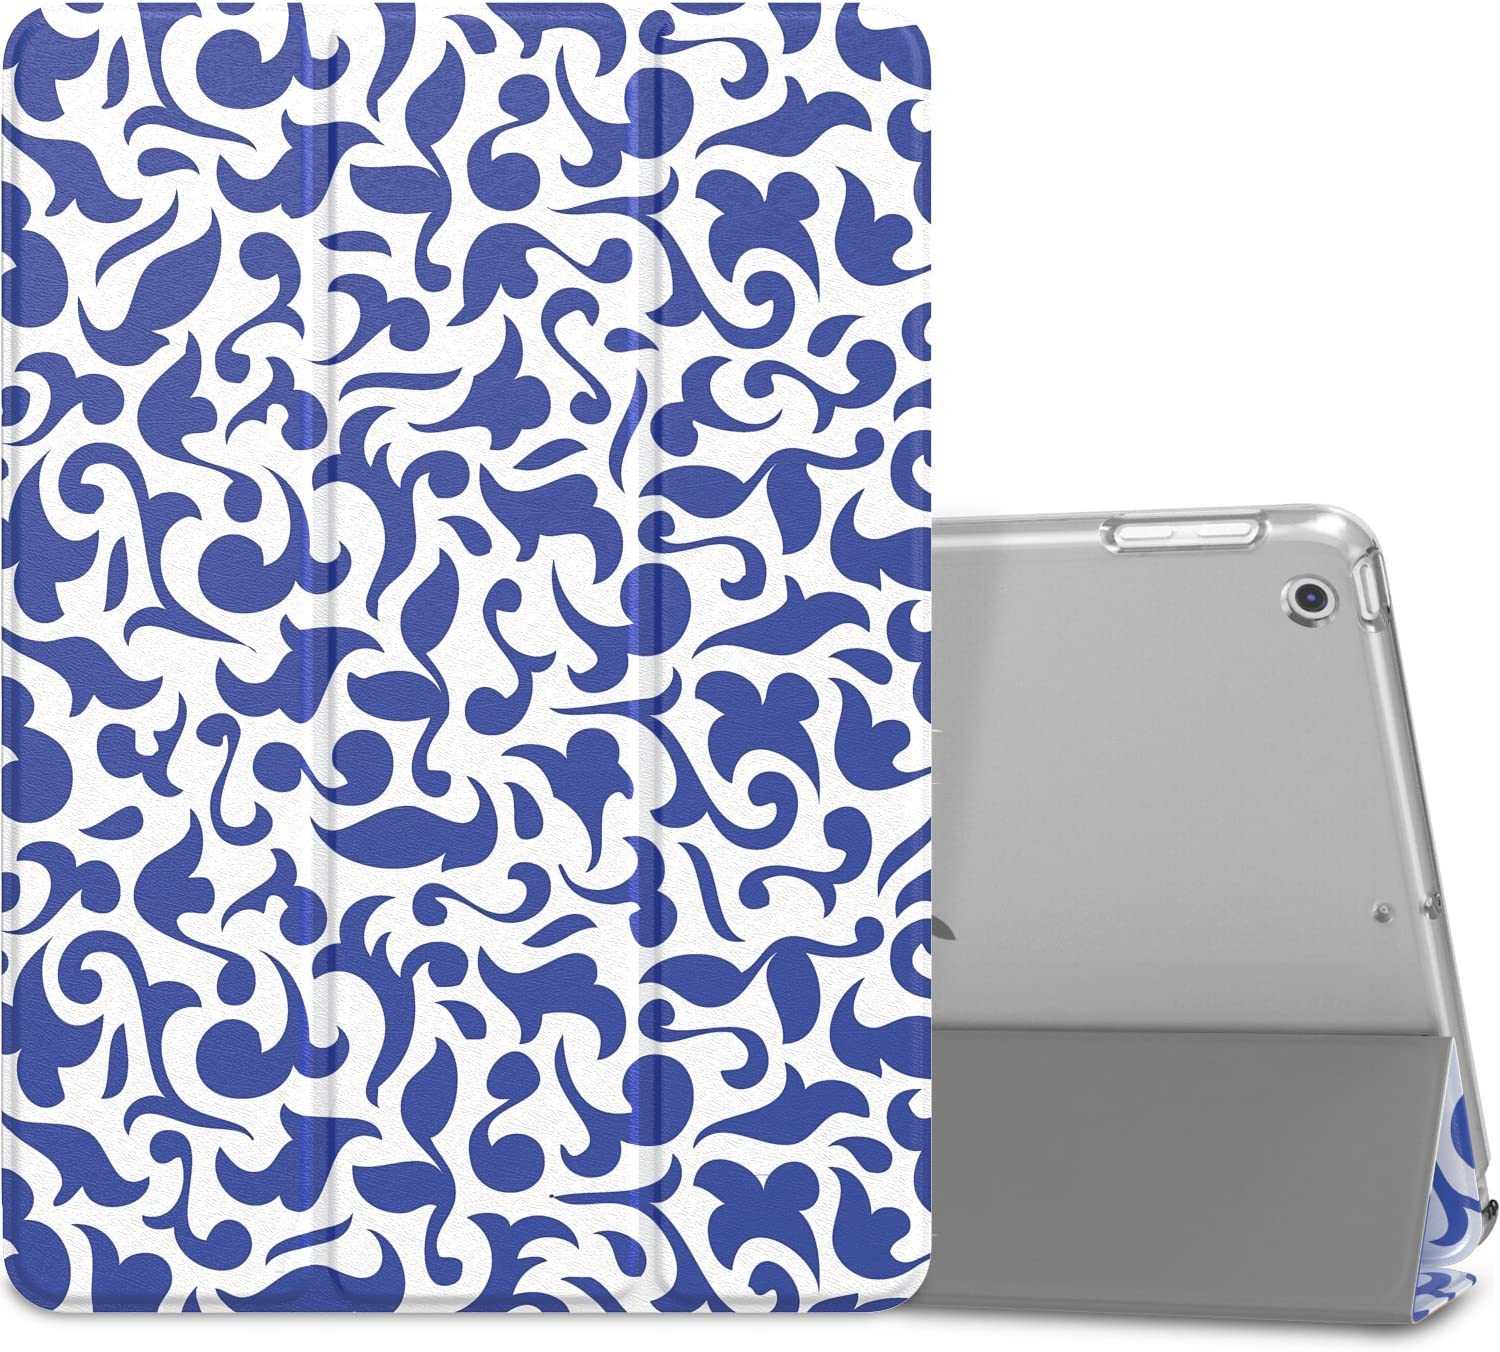 "MoKo Case Fit 2018/2017 iPad 9.7 6th/5th Generation - Slim Lightweight Smart Shell Stand Cover with Translucent Frosted Back Protector Fit iPad 9.7"" 2018/2017, Blue & White Porcelain(Auto Wake/Sleep)"